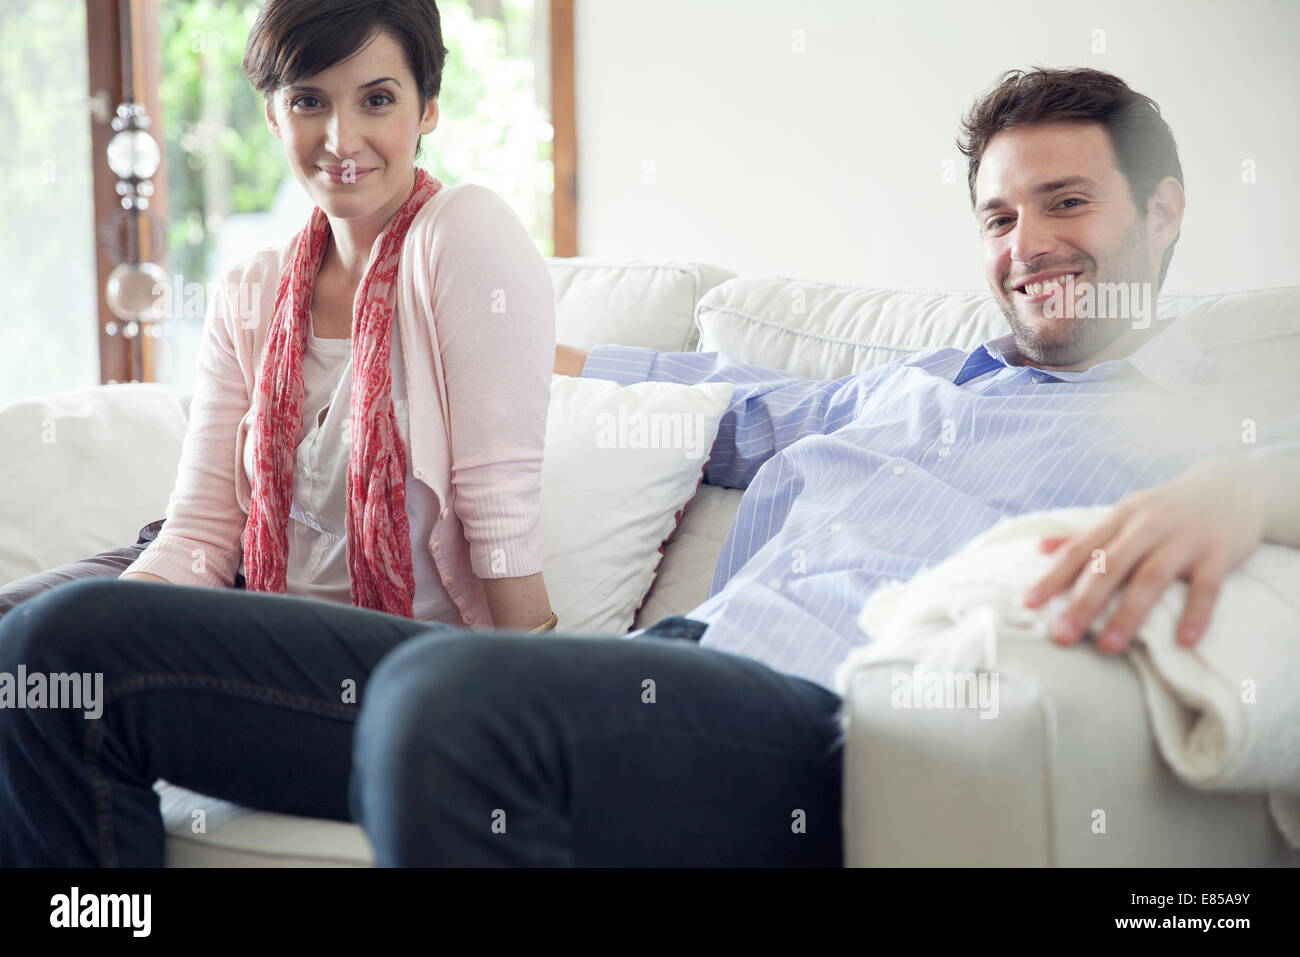 Couple relaxing on sofa at home - Stock Image